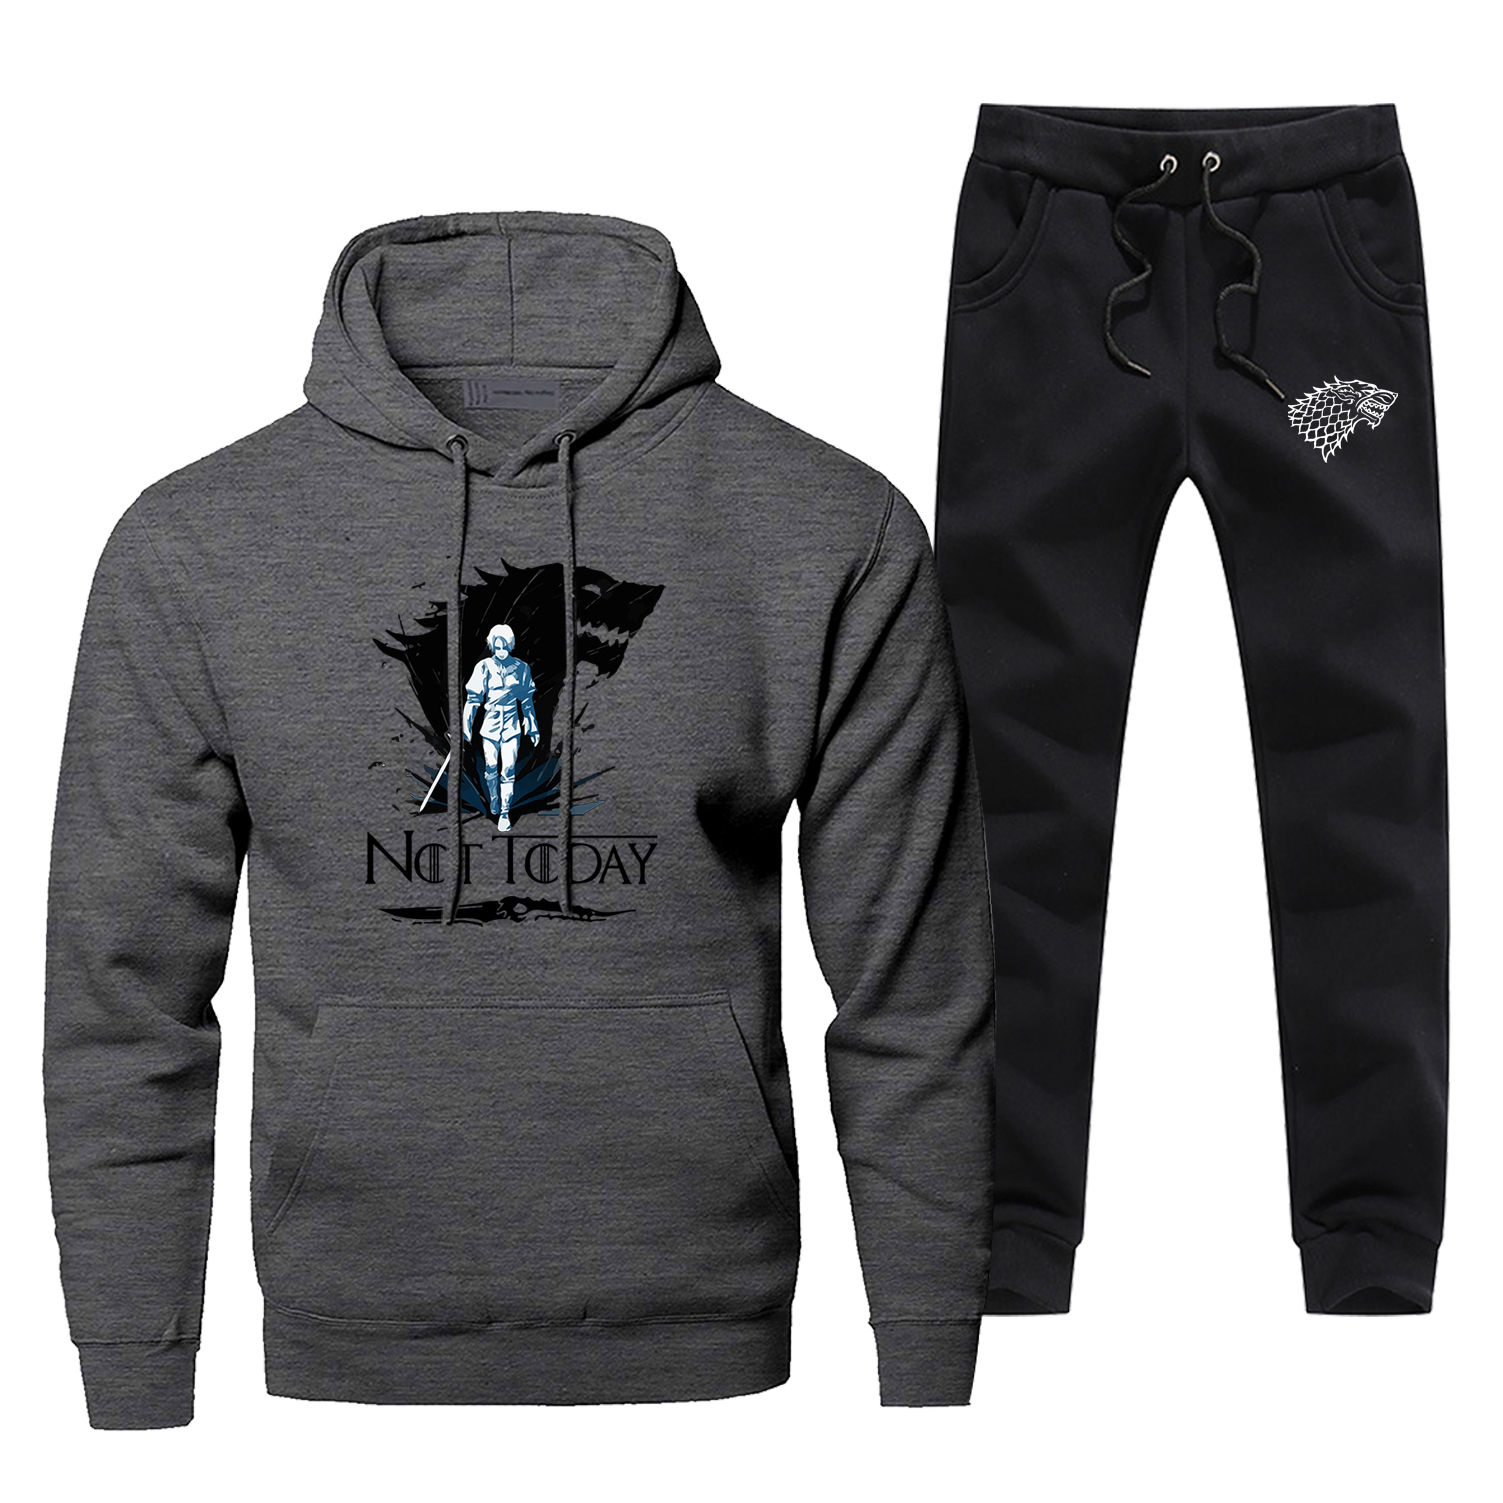 No Today Arya Stark Hoodies Sweatshirts Casaul Fashion Pants Tracksuit Game Of Thrones House Stark Men's Full Suit Tracksuit